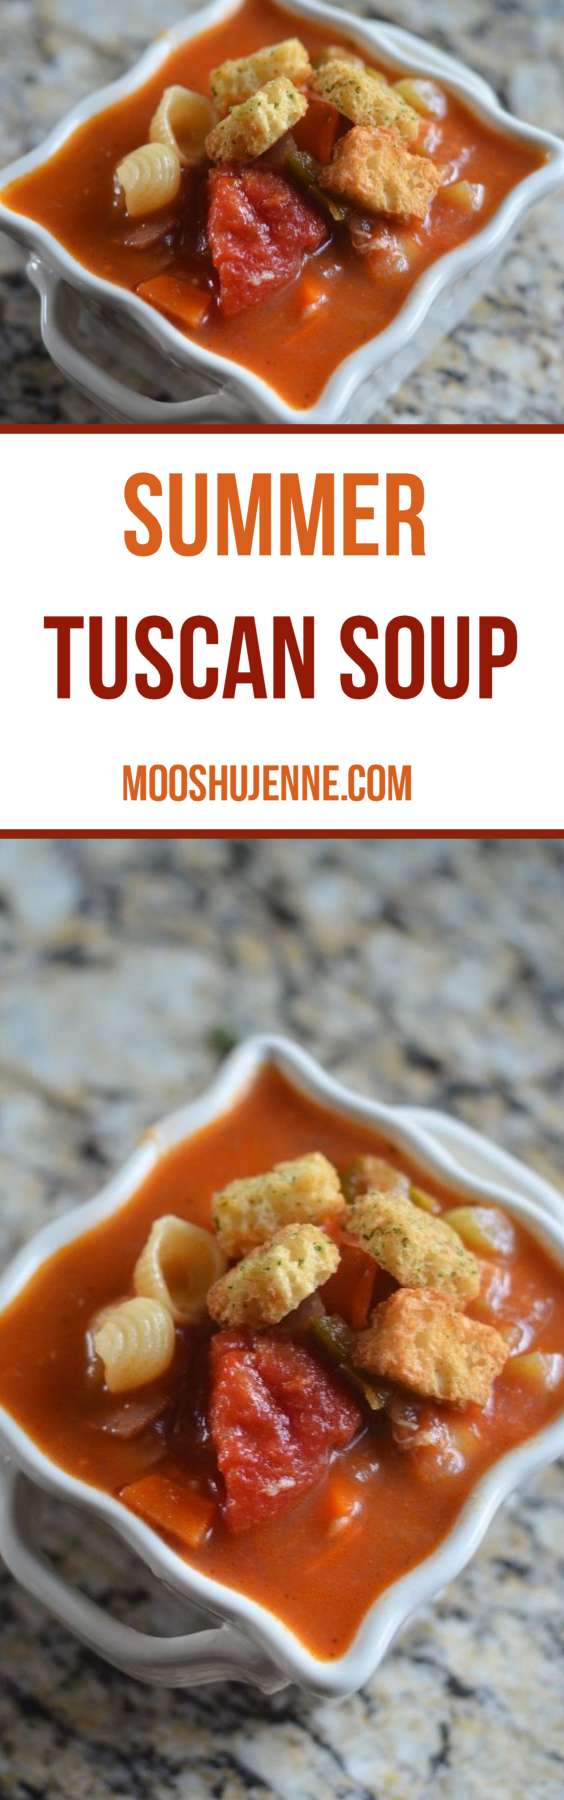 Summer Tuscan Soup